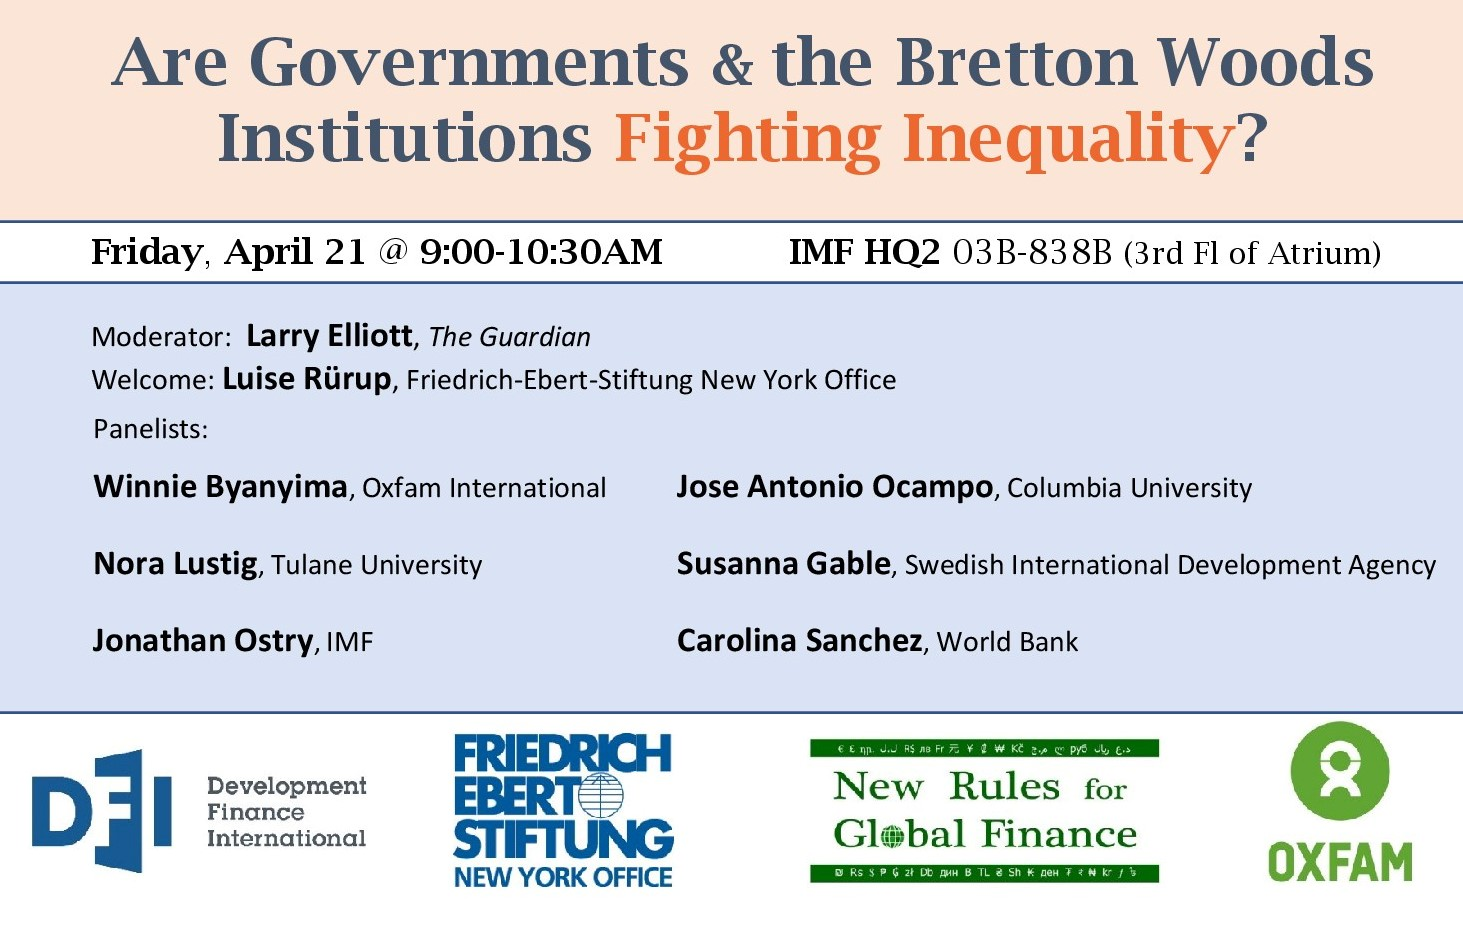 Event - New Rules for Global Finance Coalition